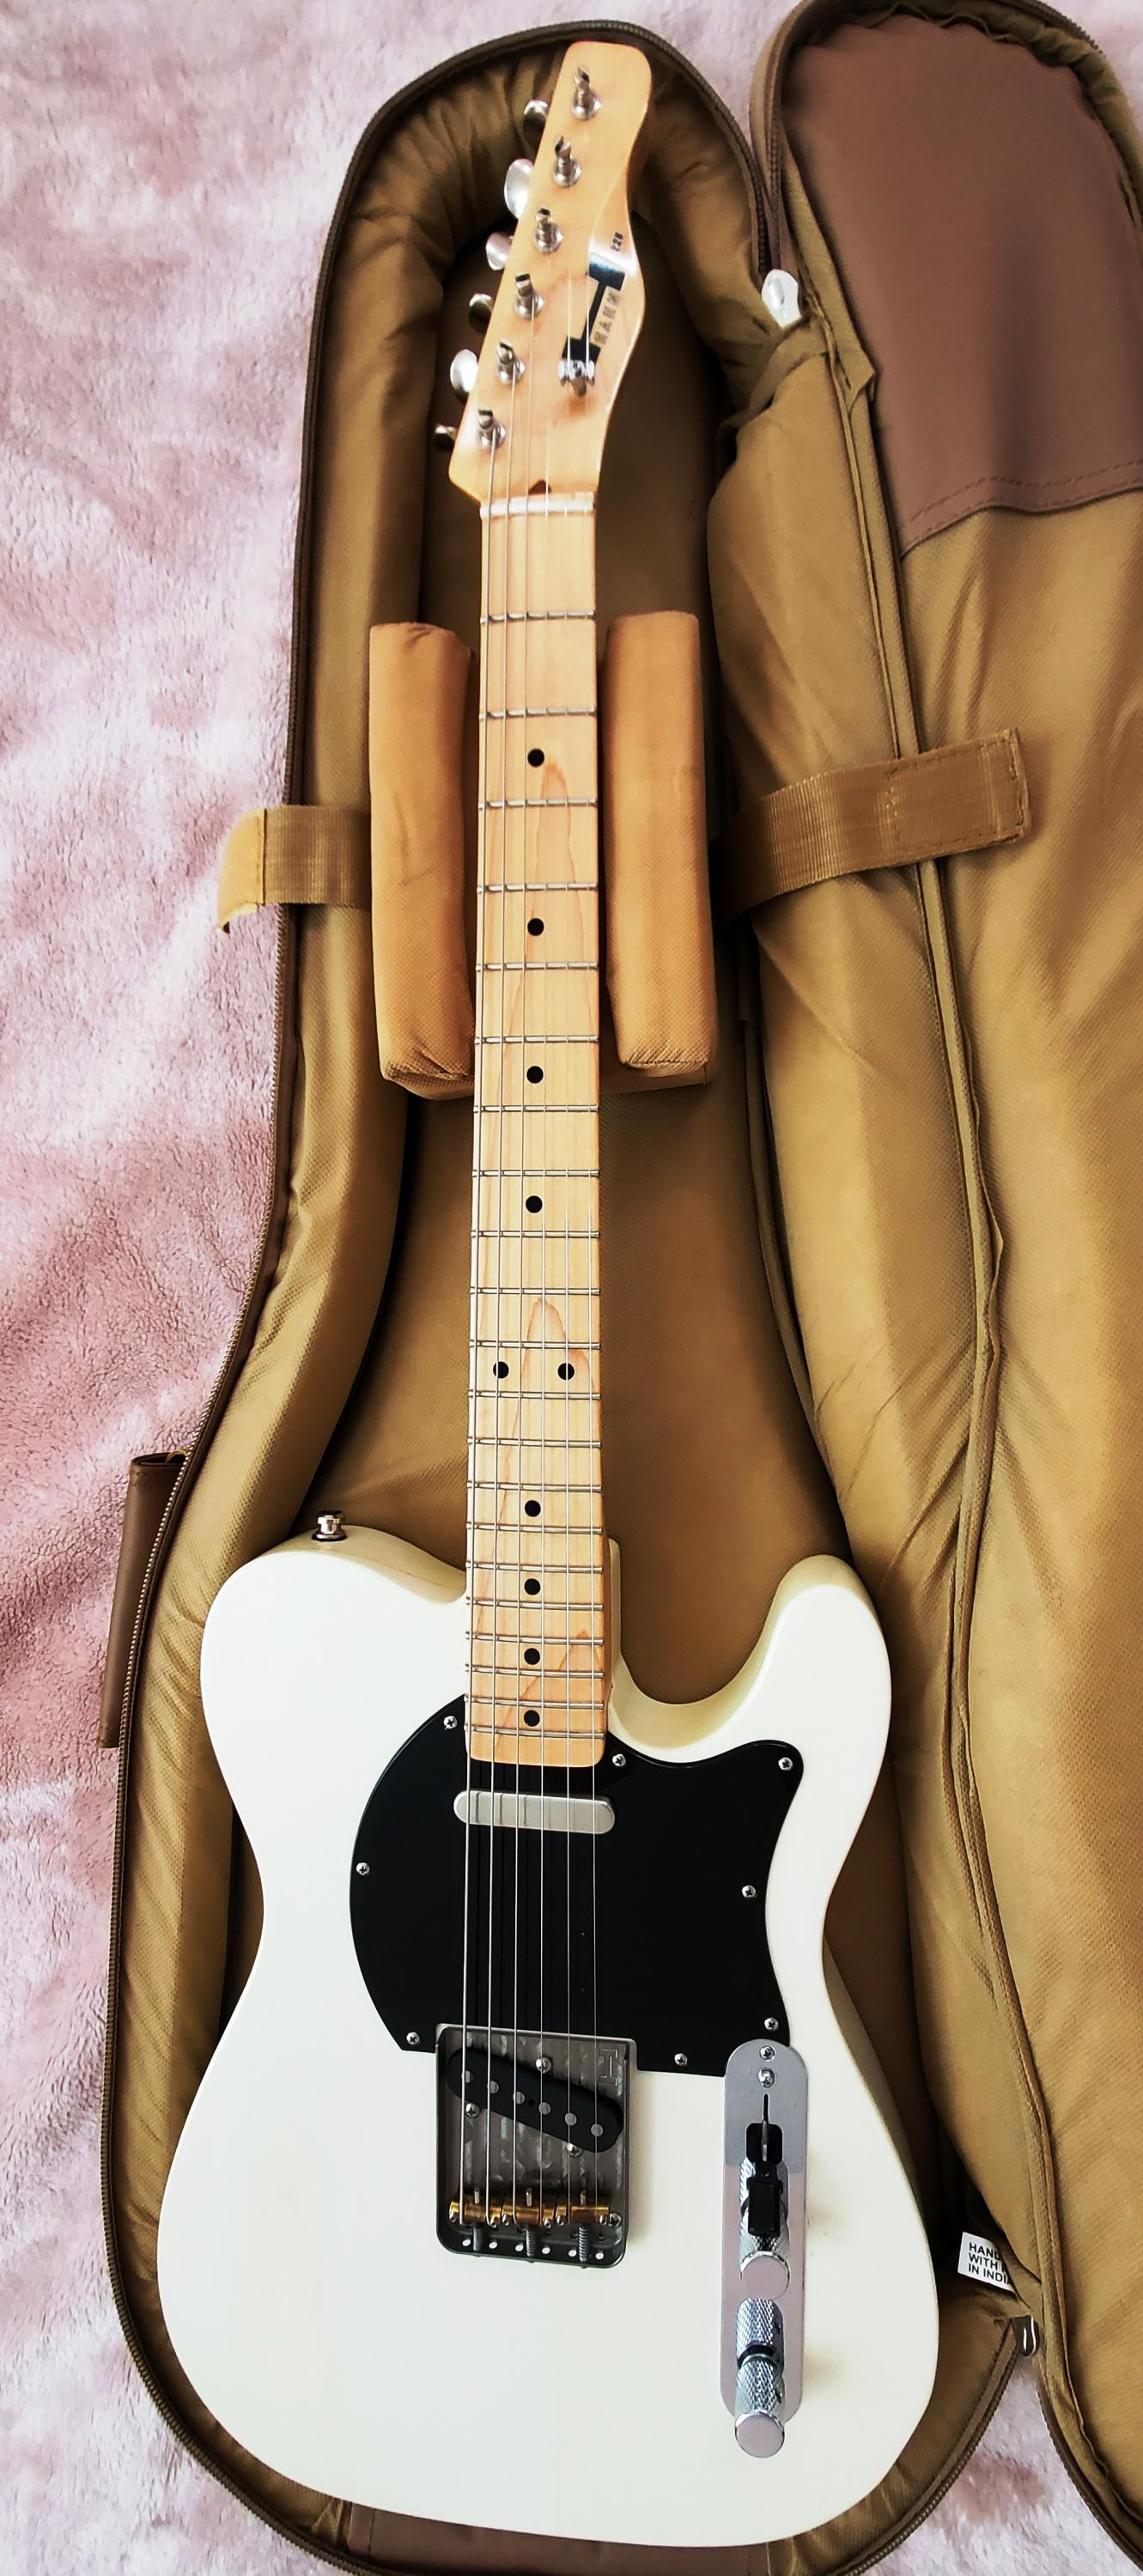 Telecaster Love Thread, No Archtops Allowed-20210116_161537-jpg